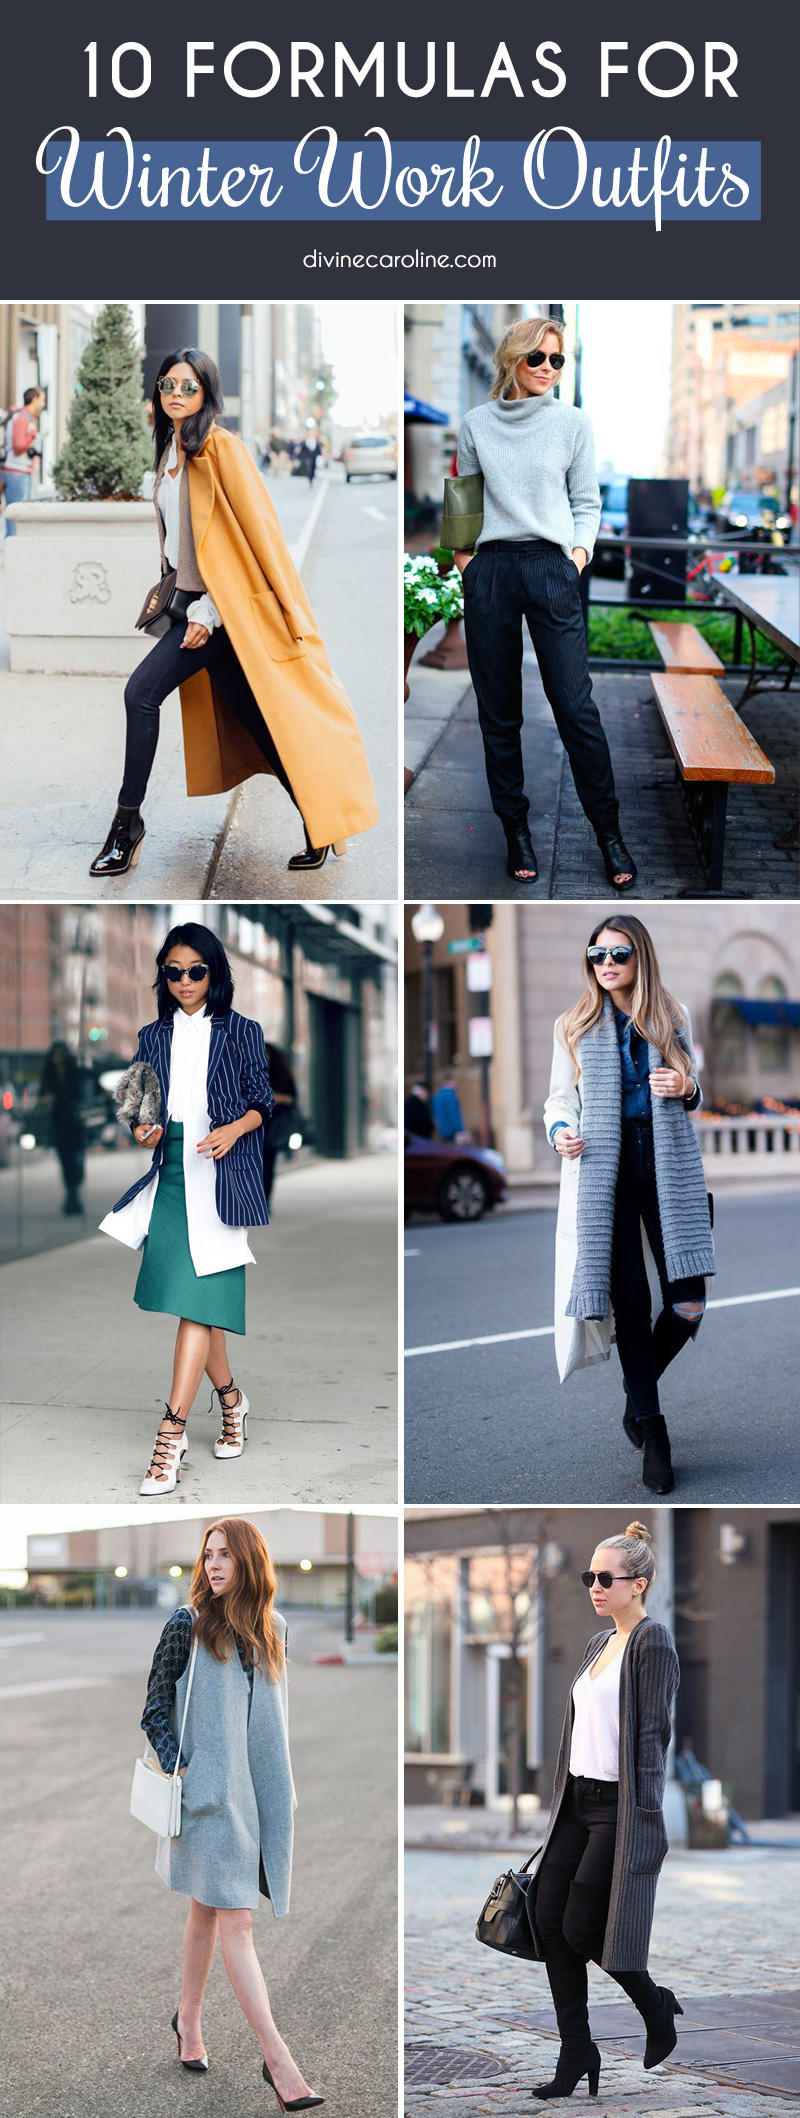 10 fail proof formulas for winter work outfits. Black Bedroom Furniture Sets. Home Design Ideas